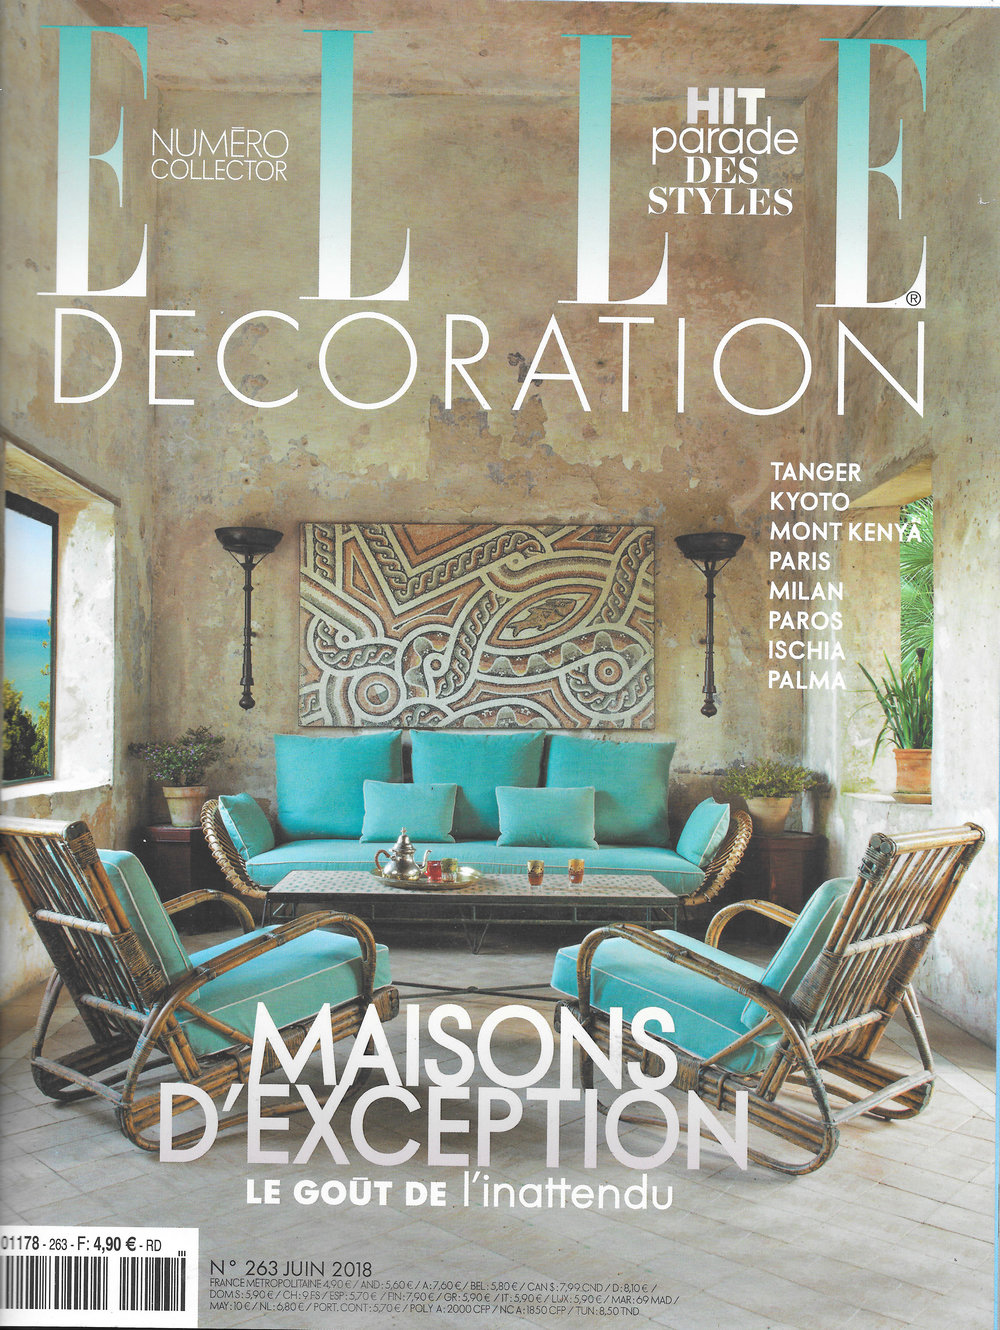 elle-deco-stools-2018-cover.jpg